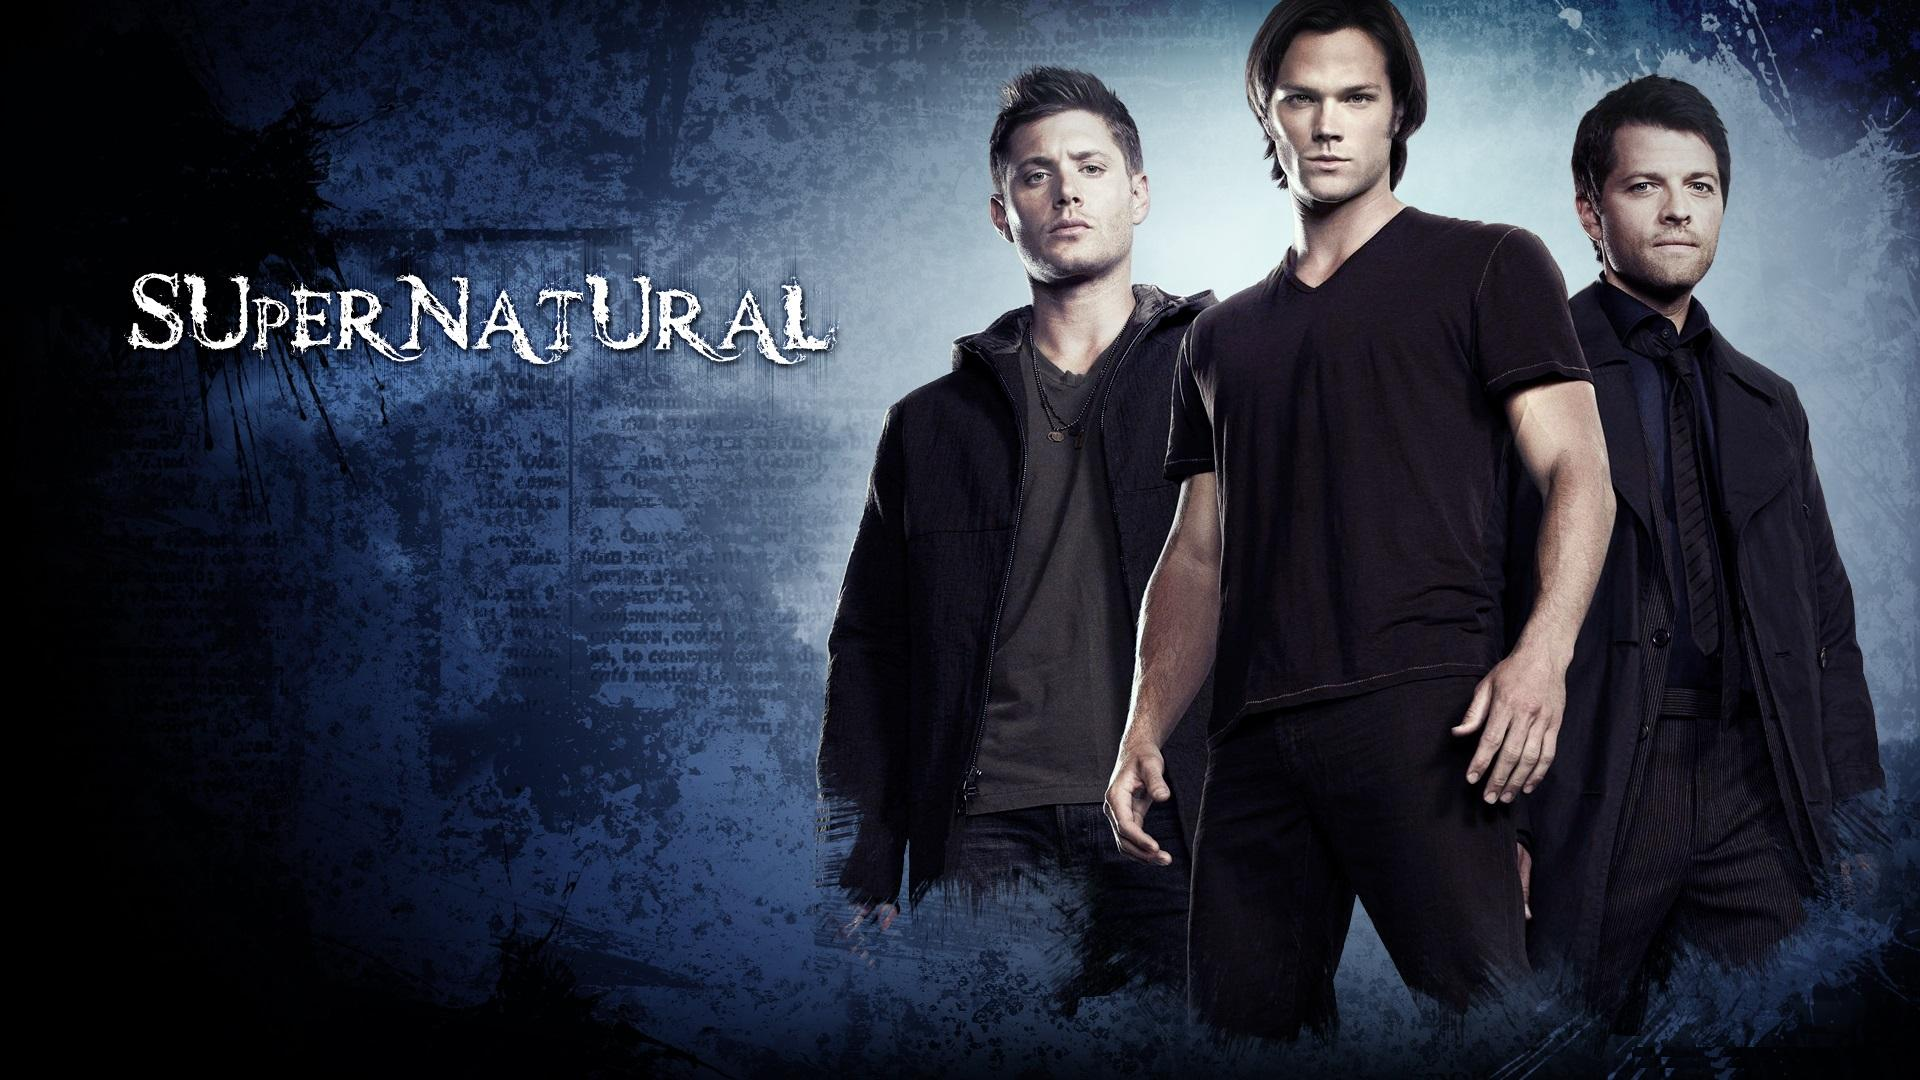 Supernatural Season 1 Wallpapers